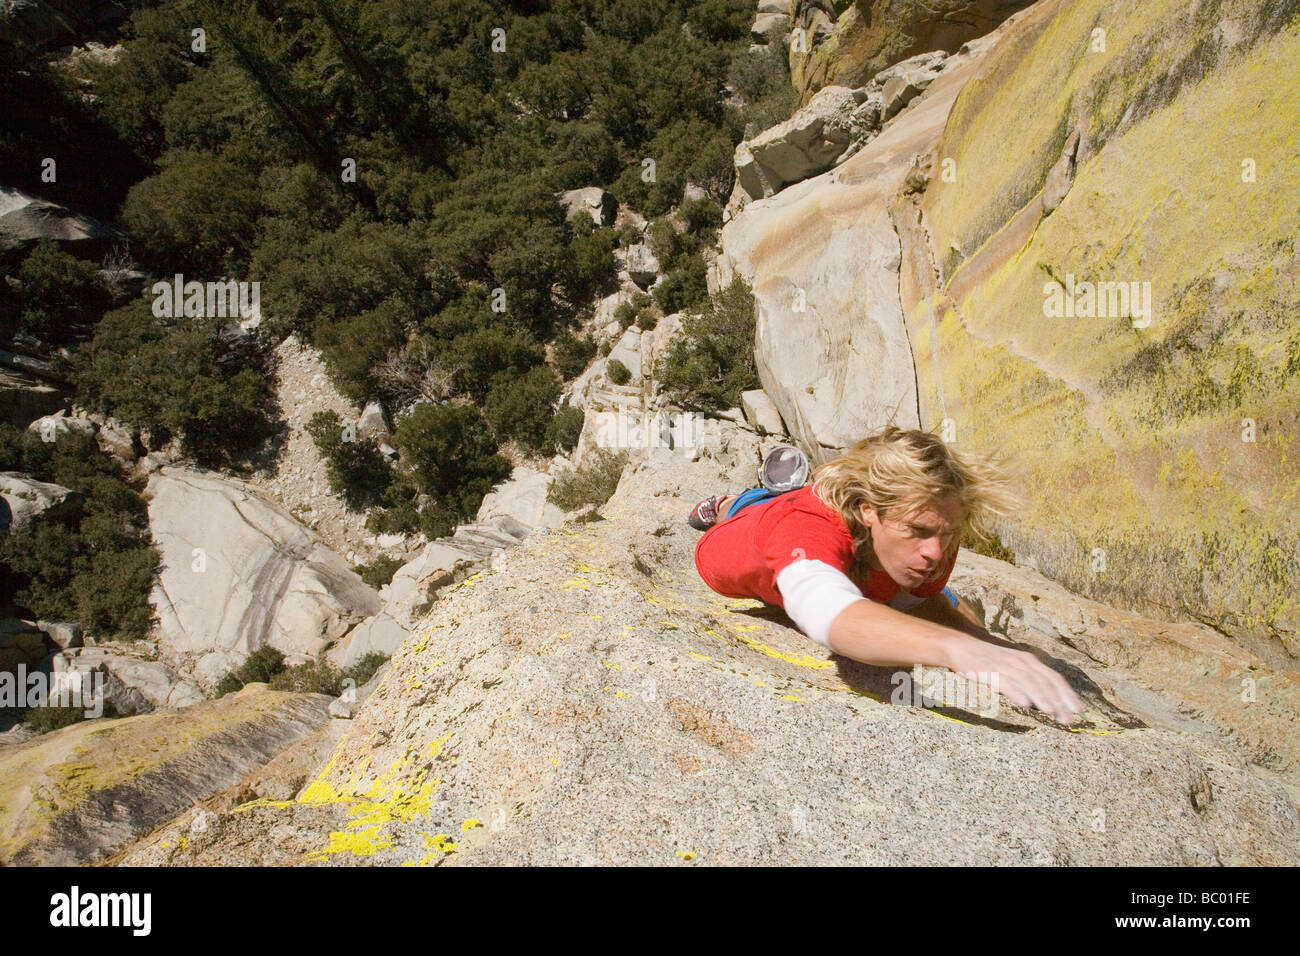 A man solo climbs in The Needles. - Stock Image